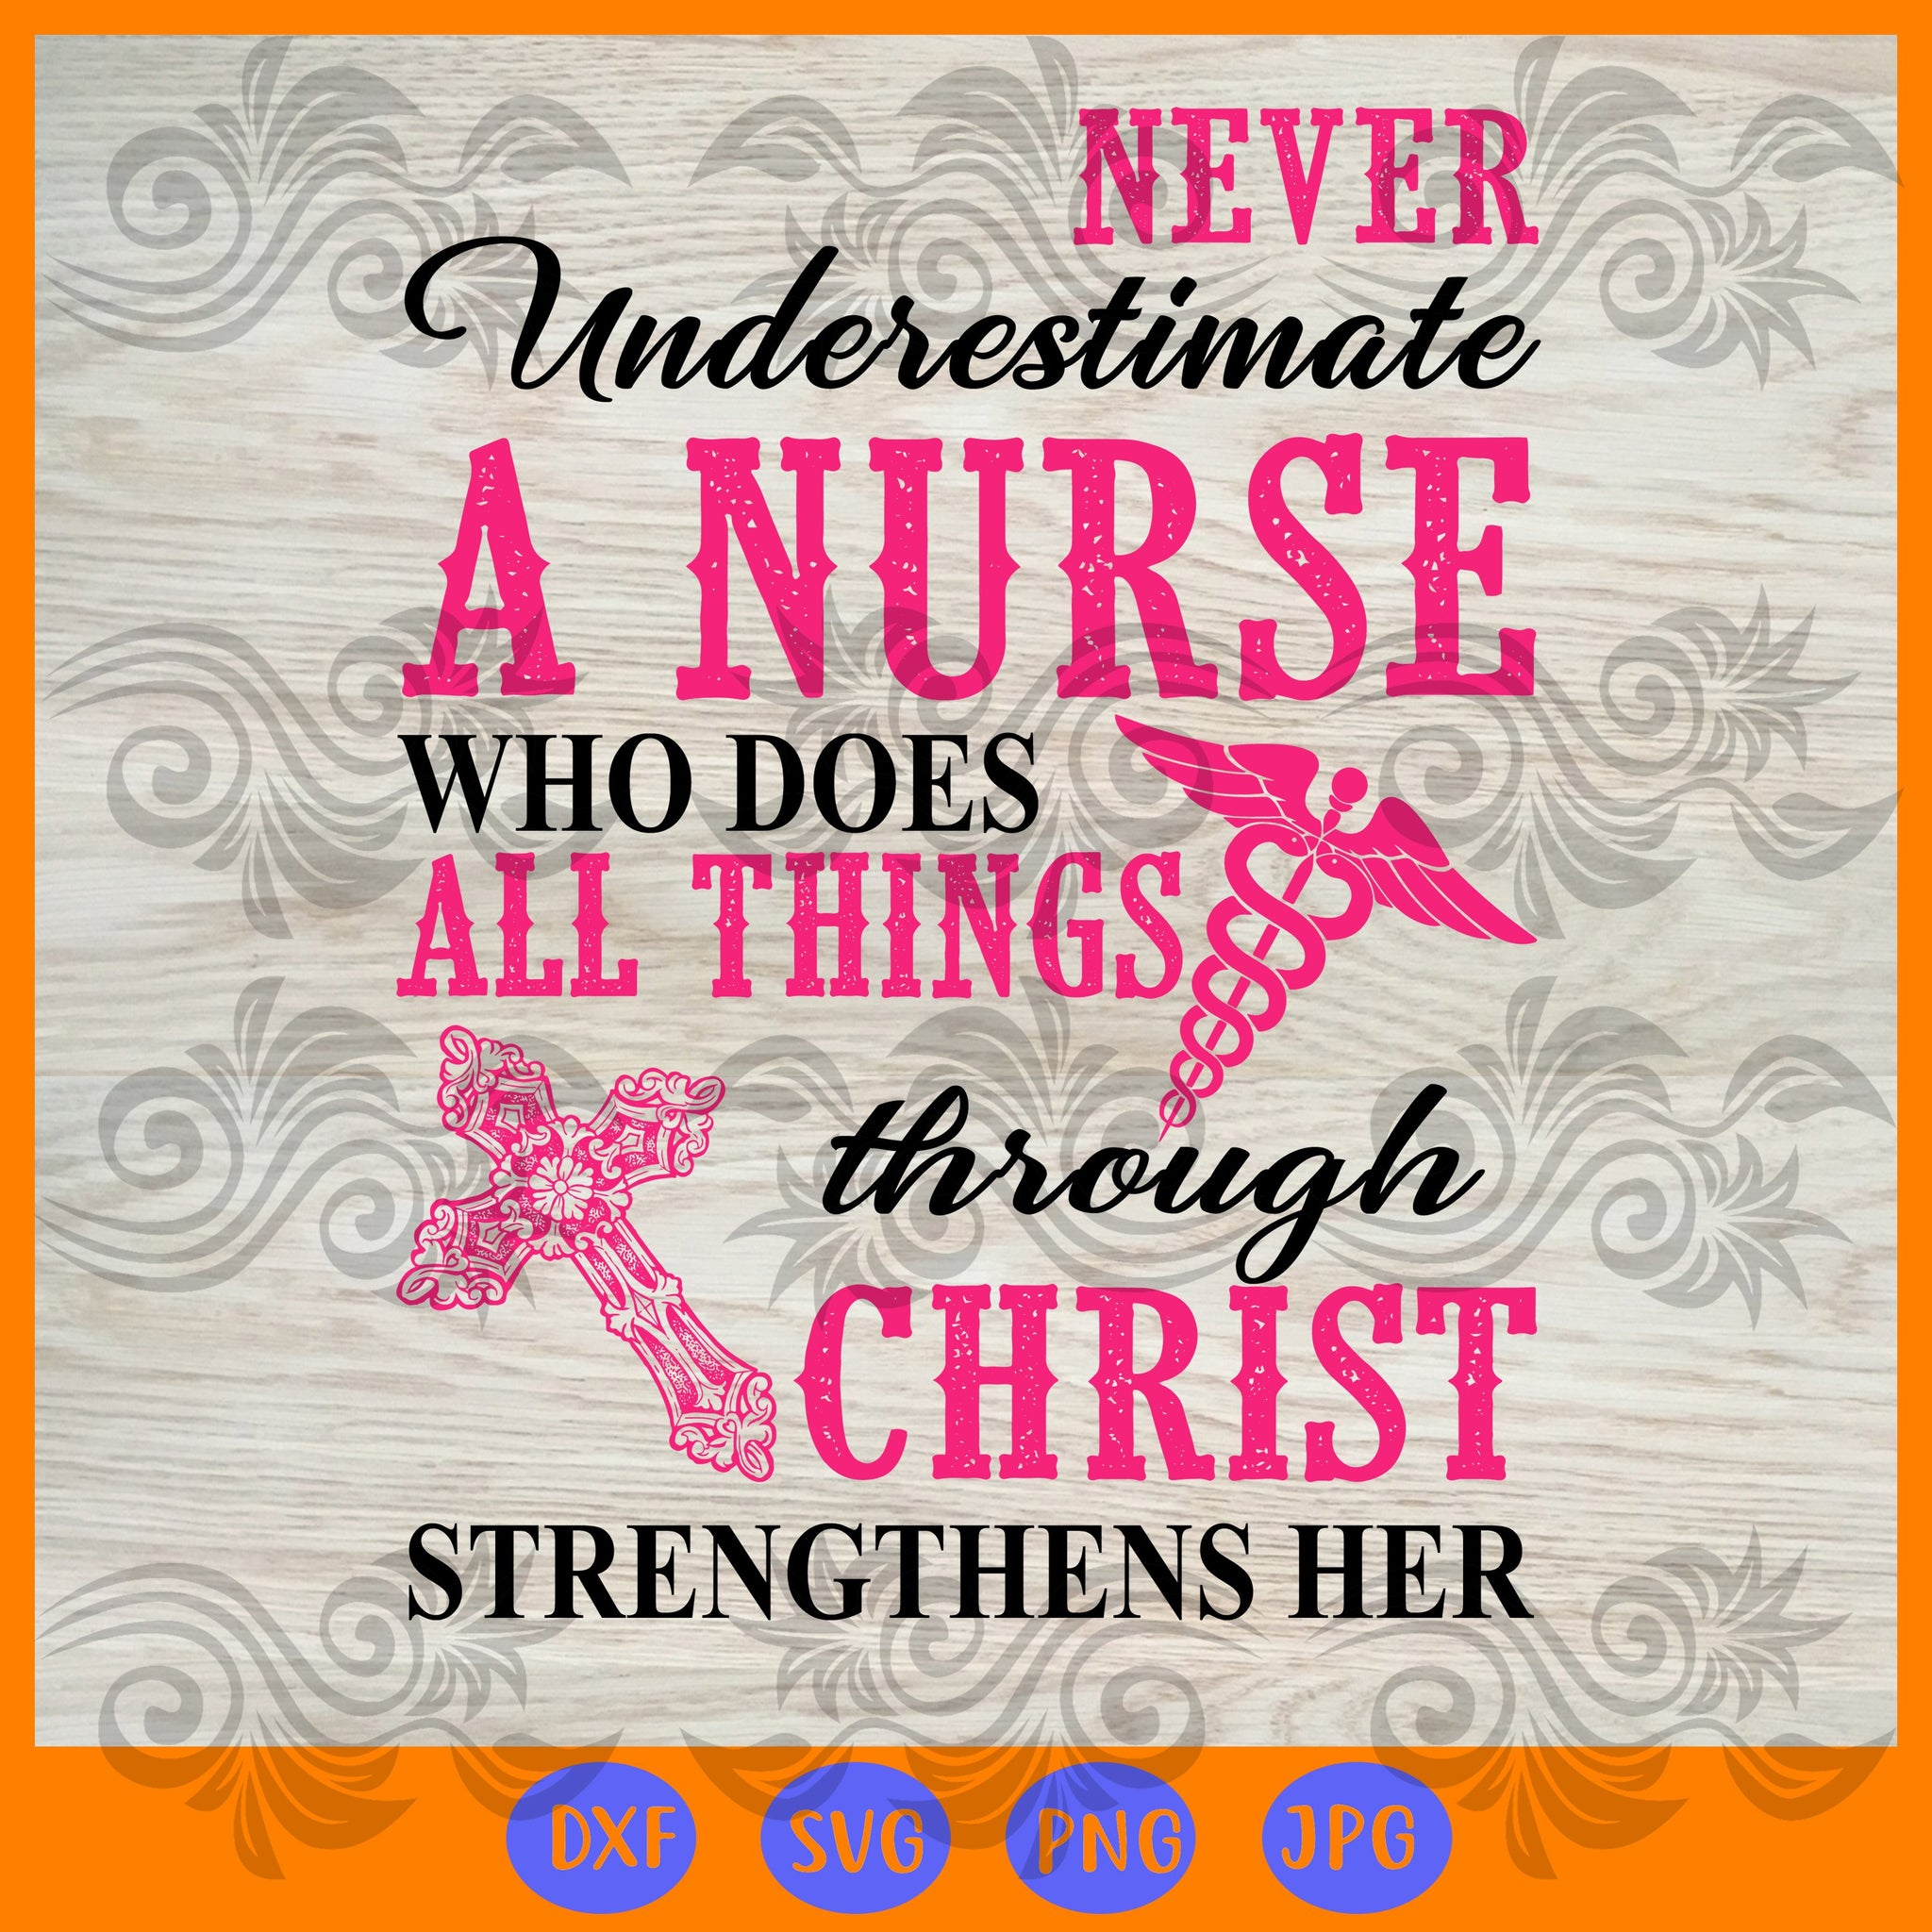 Never underestimate a nurse who does all things through christ ,  nurse, nurse svg, nurse gift, i can do all things, through christ svg, strengthens me svg,trending svg, Files For Silhouette, Files For Cricut, SVG, DXF, EPS, PNG, Instant Download